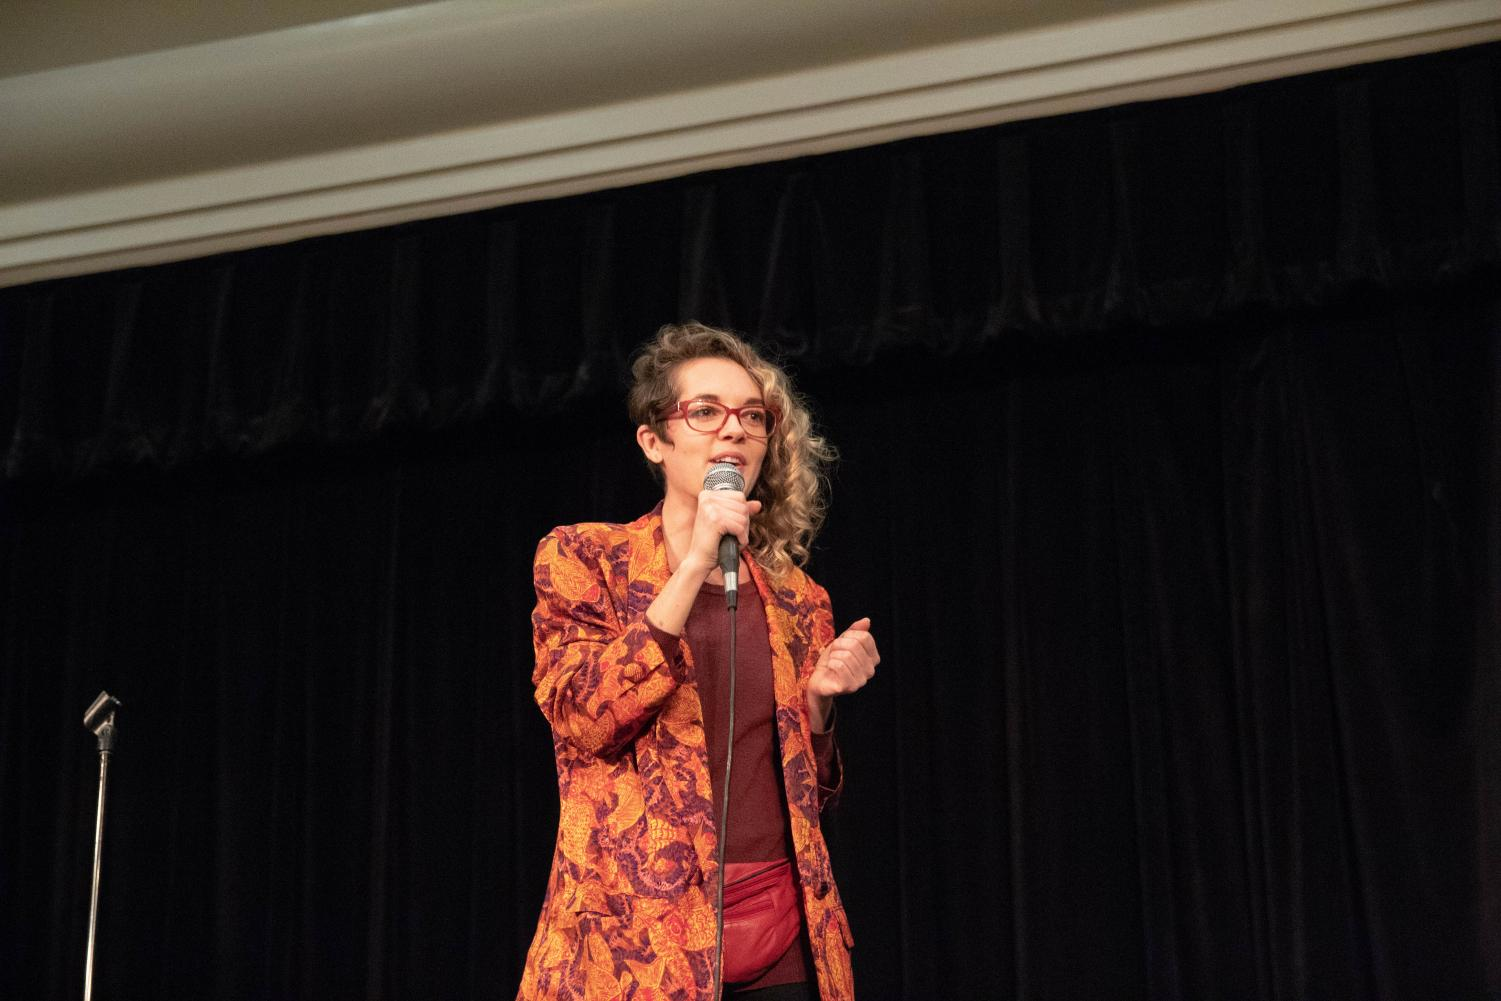 Comedian and Sac State alumna, Shahera Hyatt, was the second act in the comedy show put together by UNIQUE Programs in the University Union Ballroom on Thursday.